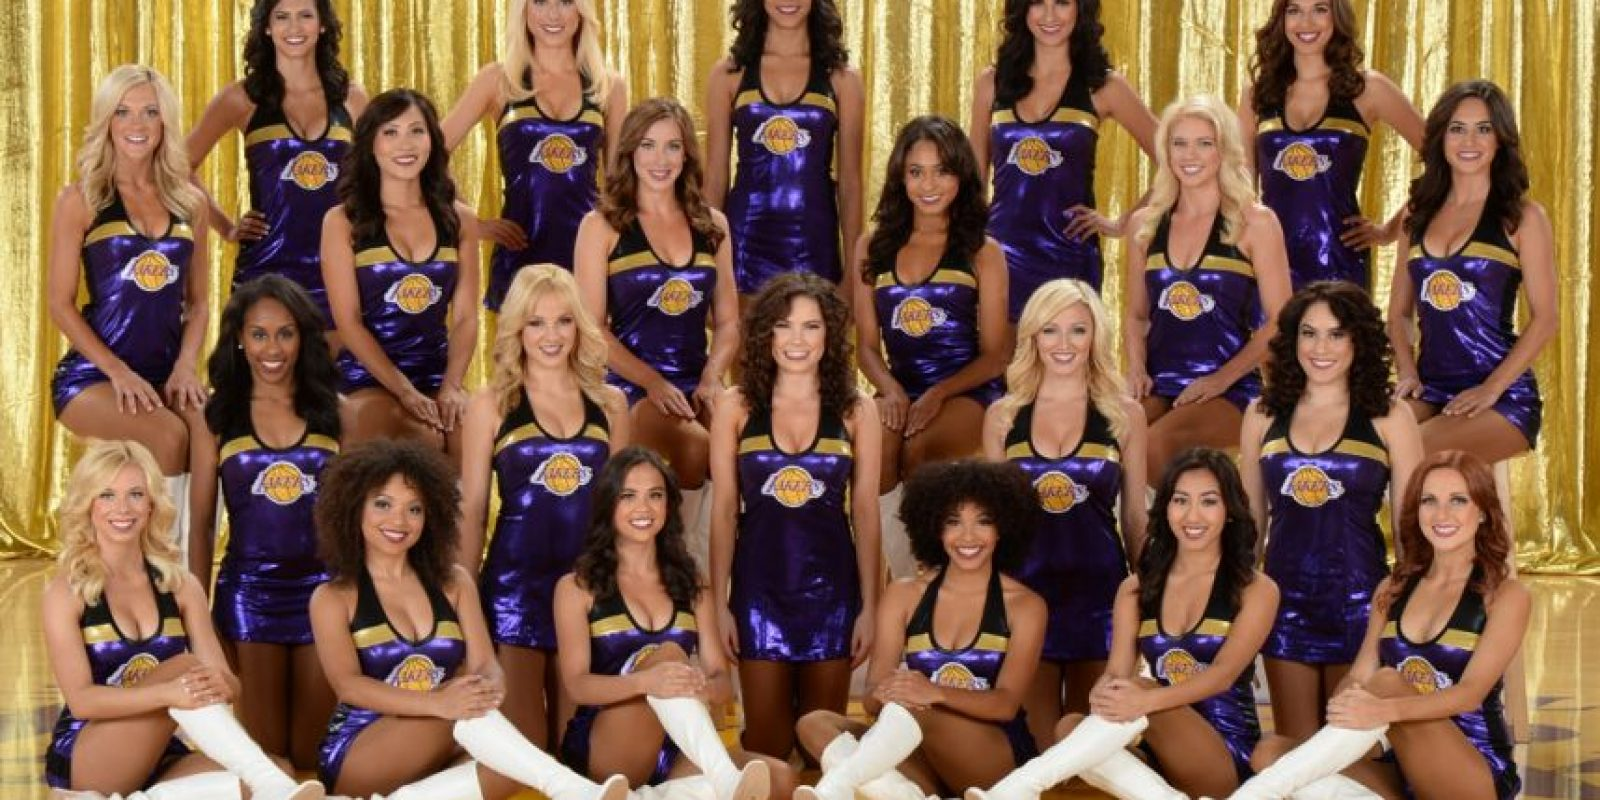 Lakers Girls Foto: NBA